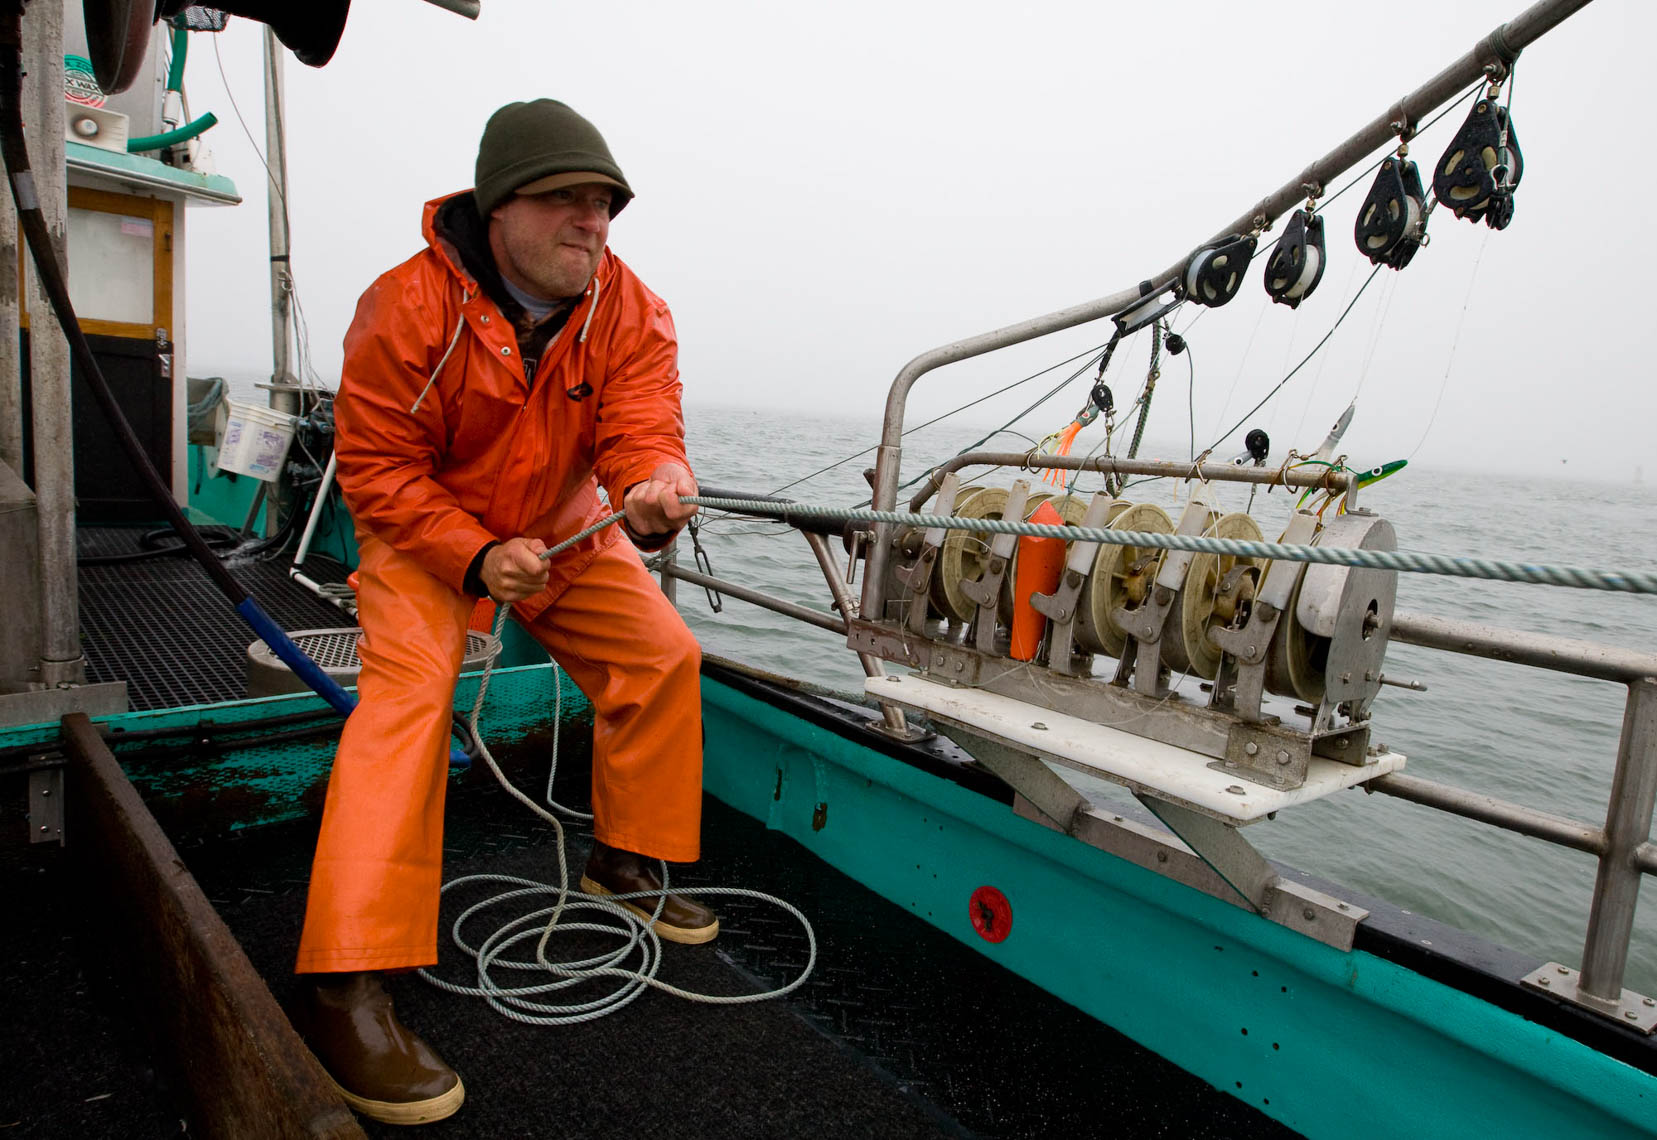 Crewman Pulls in Anchovy Net